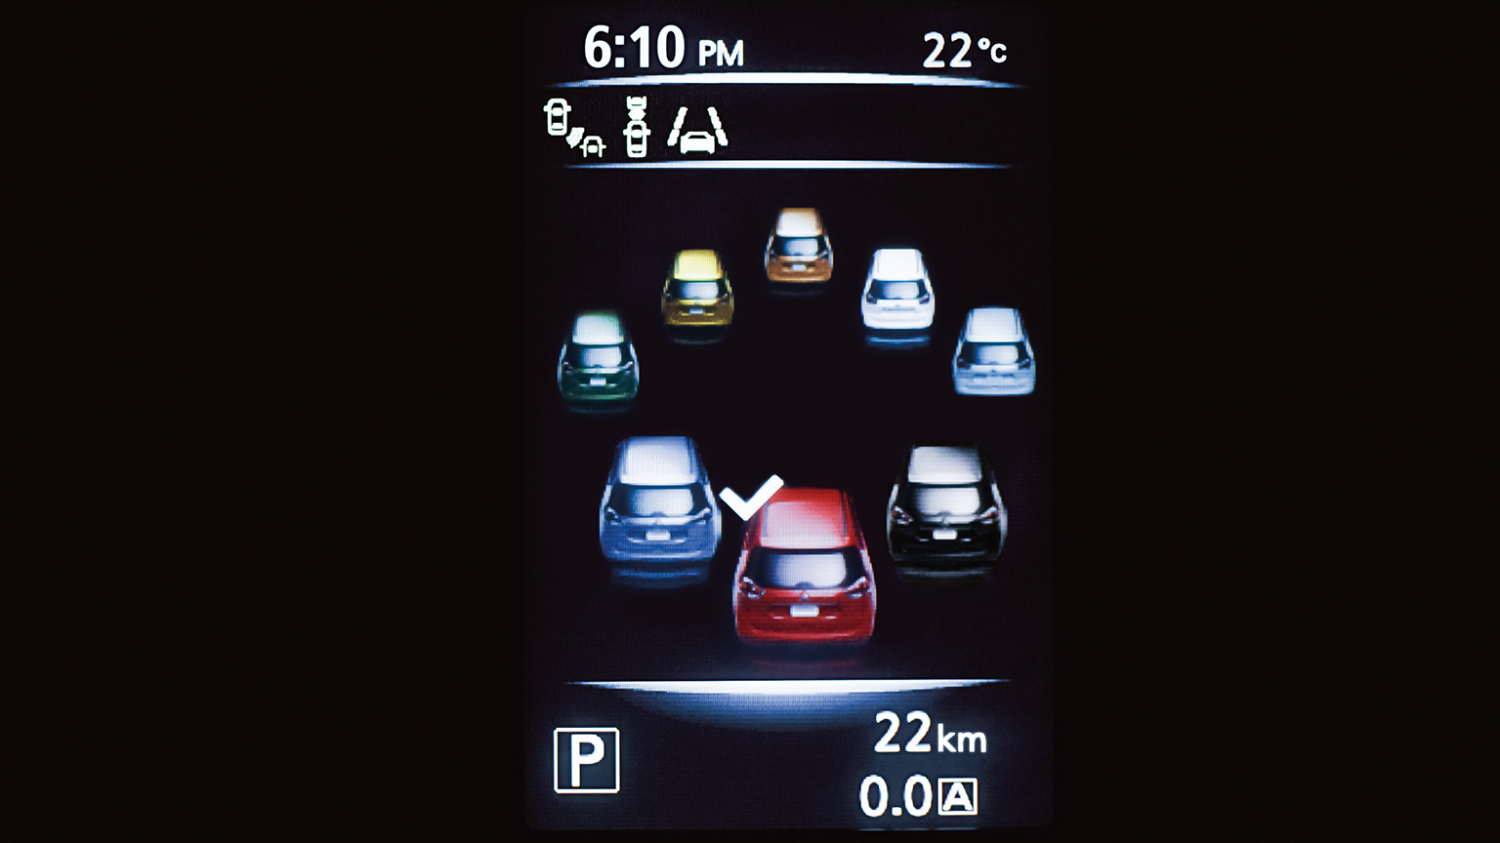 Advaced Drive-Assist display